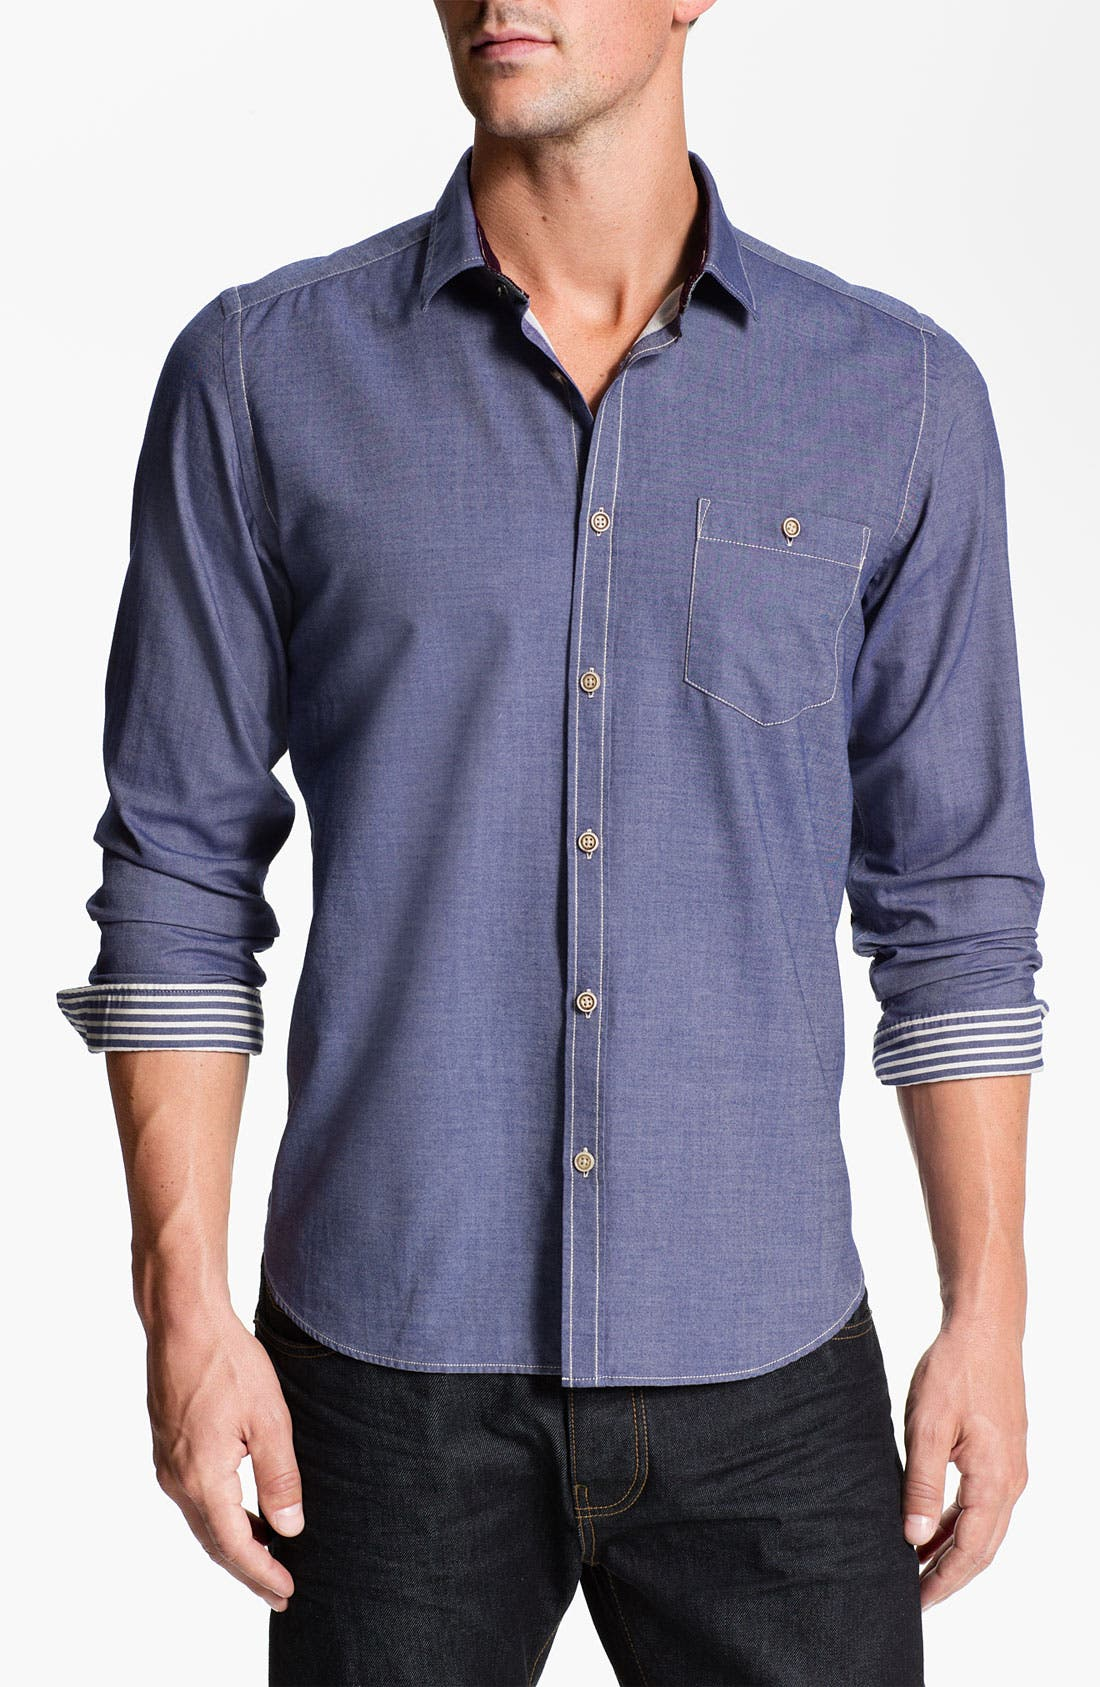 Alternate Image 1 Selected - Ted Baker London 'Questo' Sport Shirt